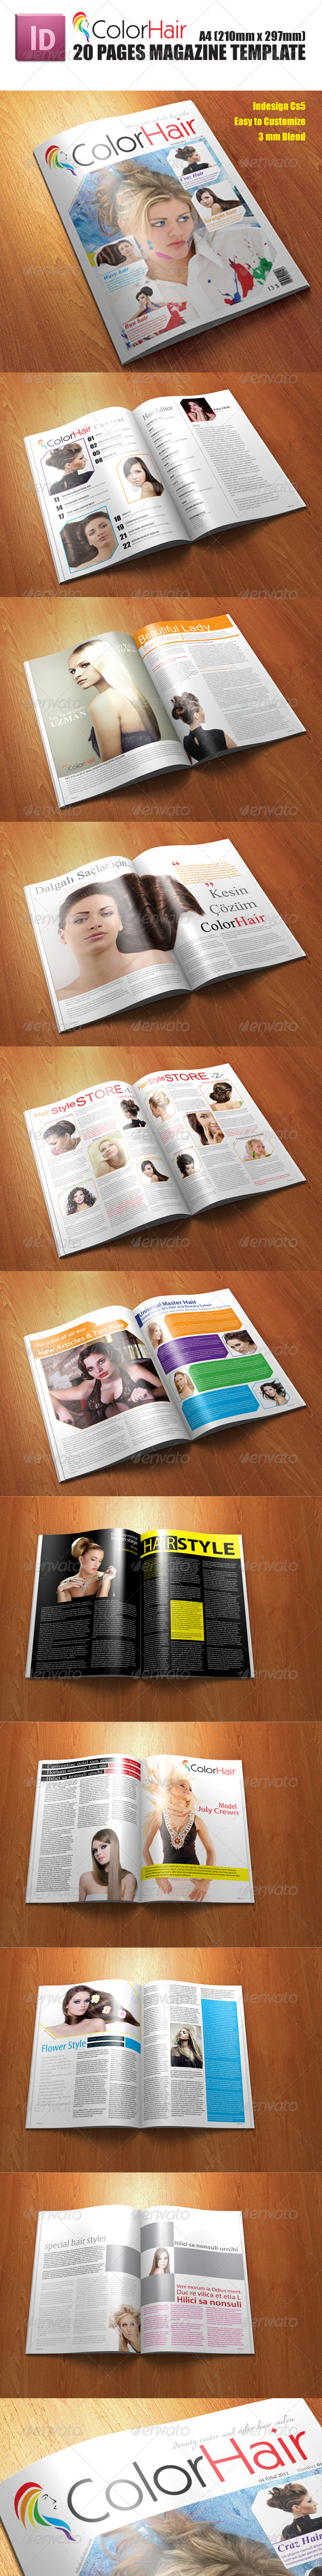 Color Hair Magazine Tepmlate - Magazines Print Templates